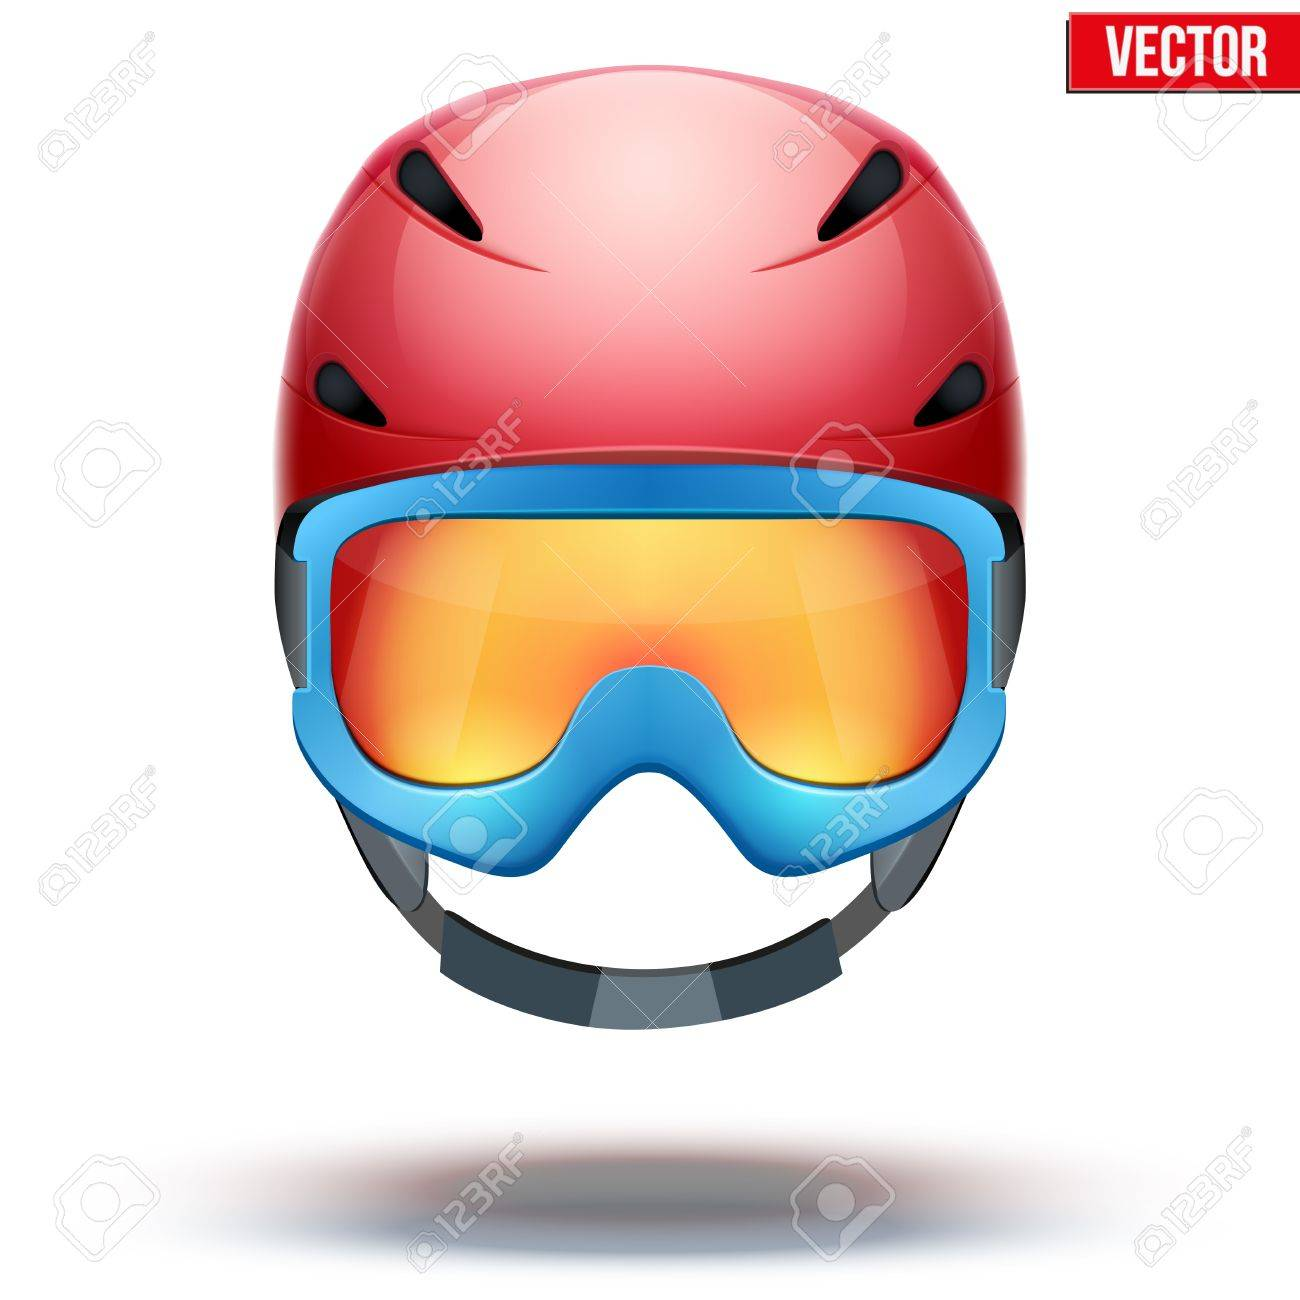 Front View Of Classic Red Ski Helmet And Blue Snowboard Goggles Royalty Free Cliparts Vectors And Stock Illustration Image 32126214